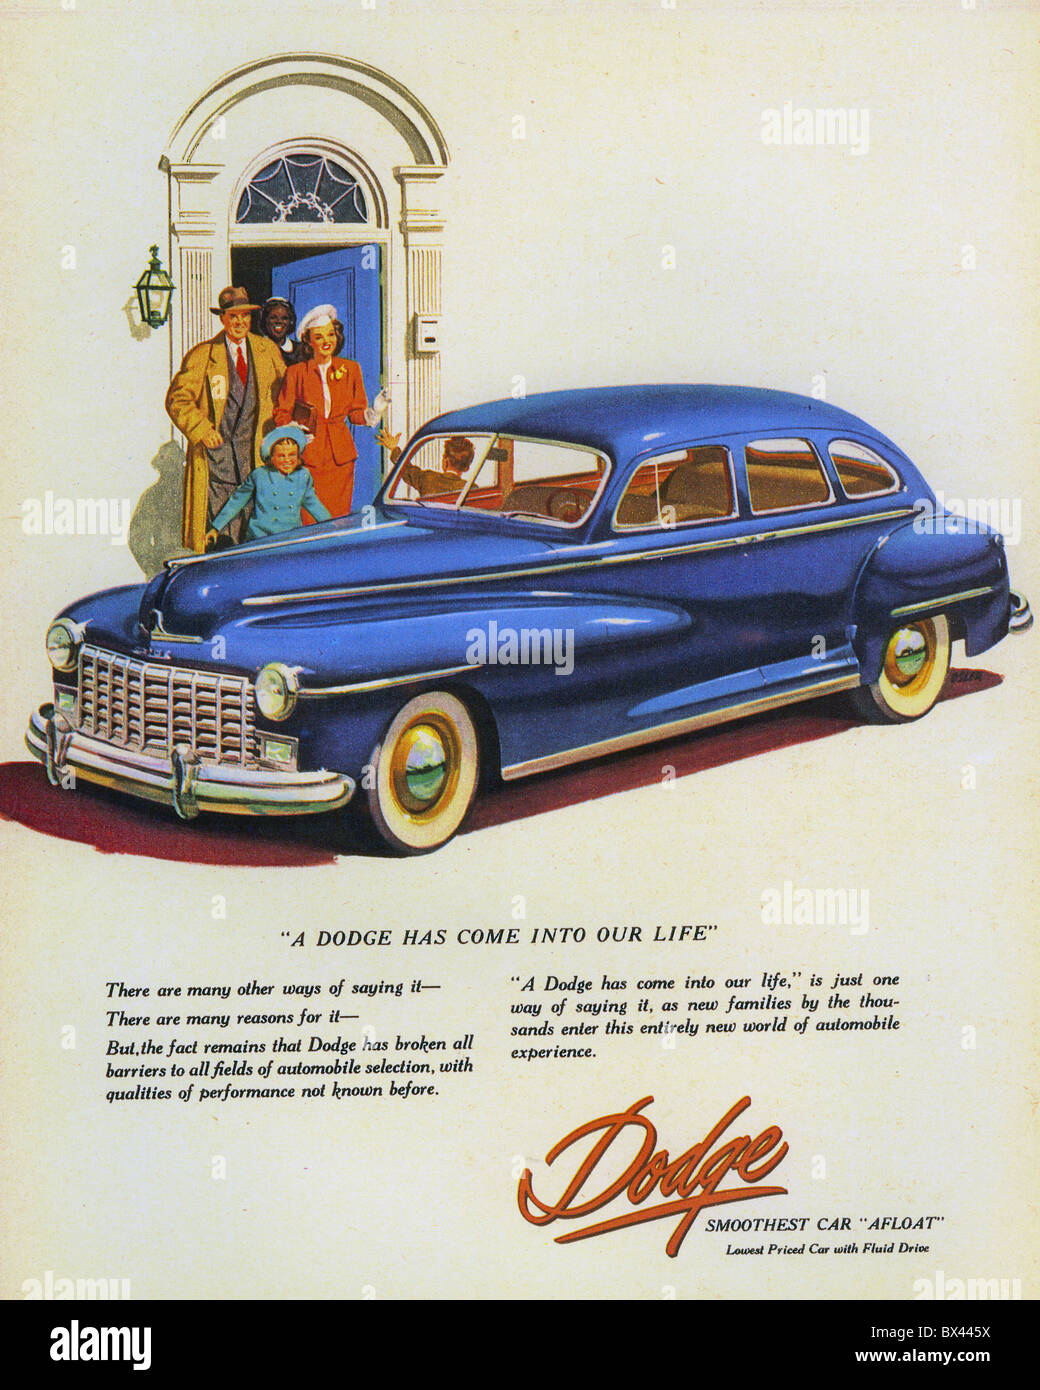 1949 DODGE advert - Stock Image